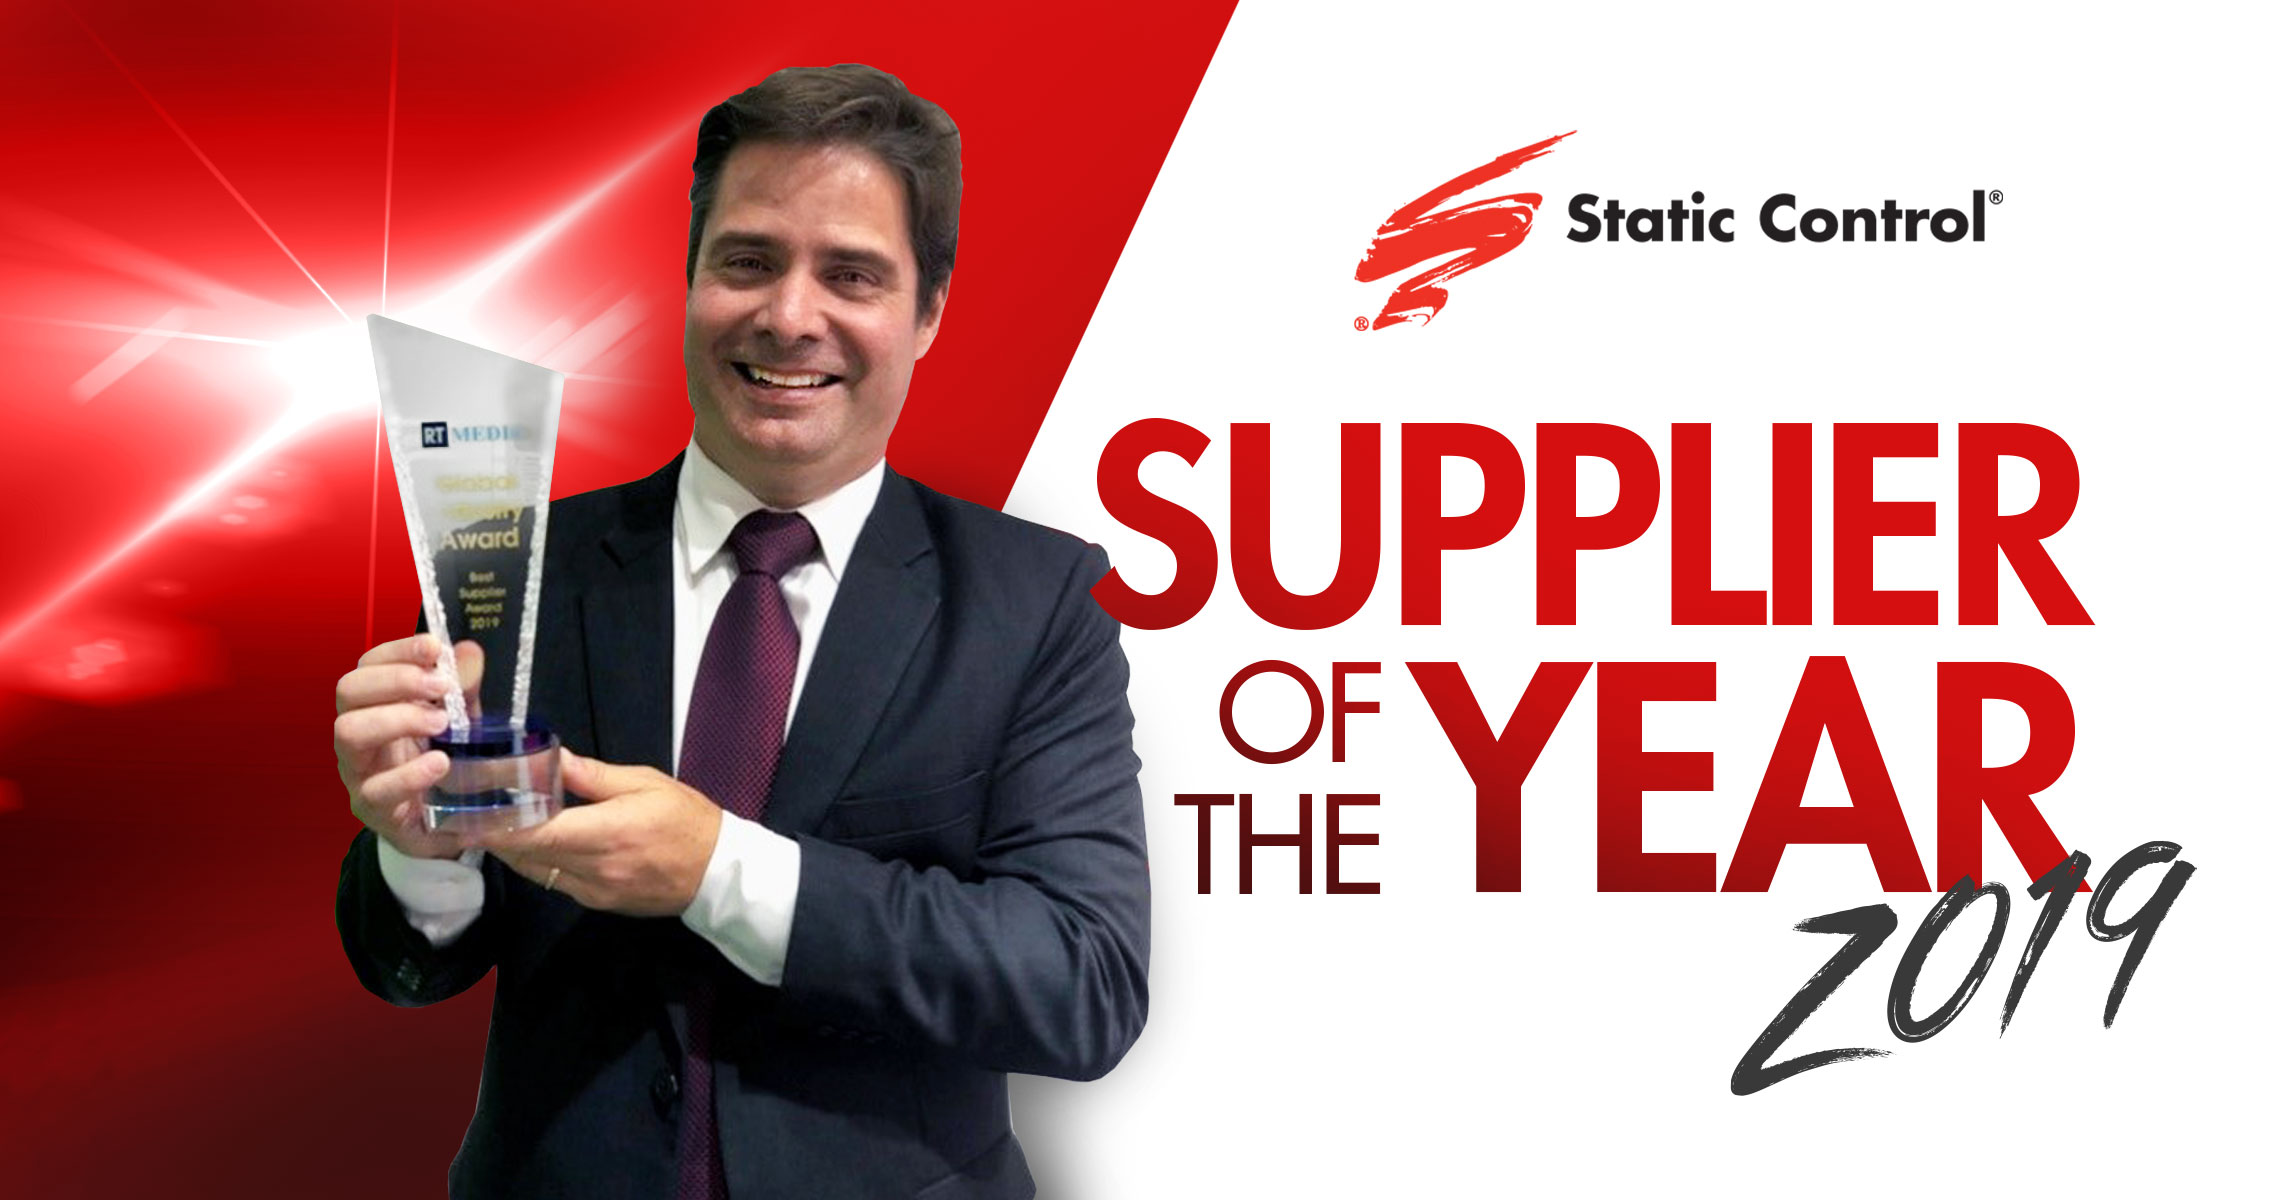 Static Control Wins Supplier of the Year